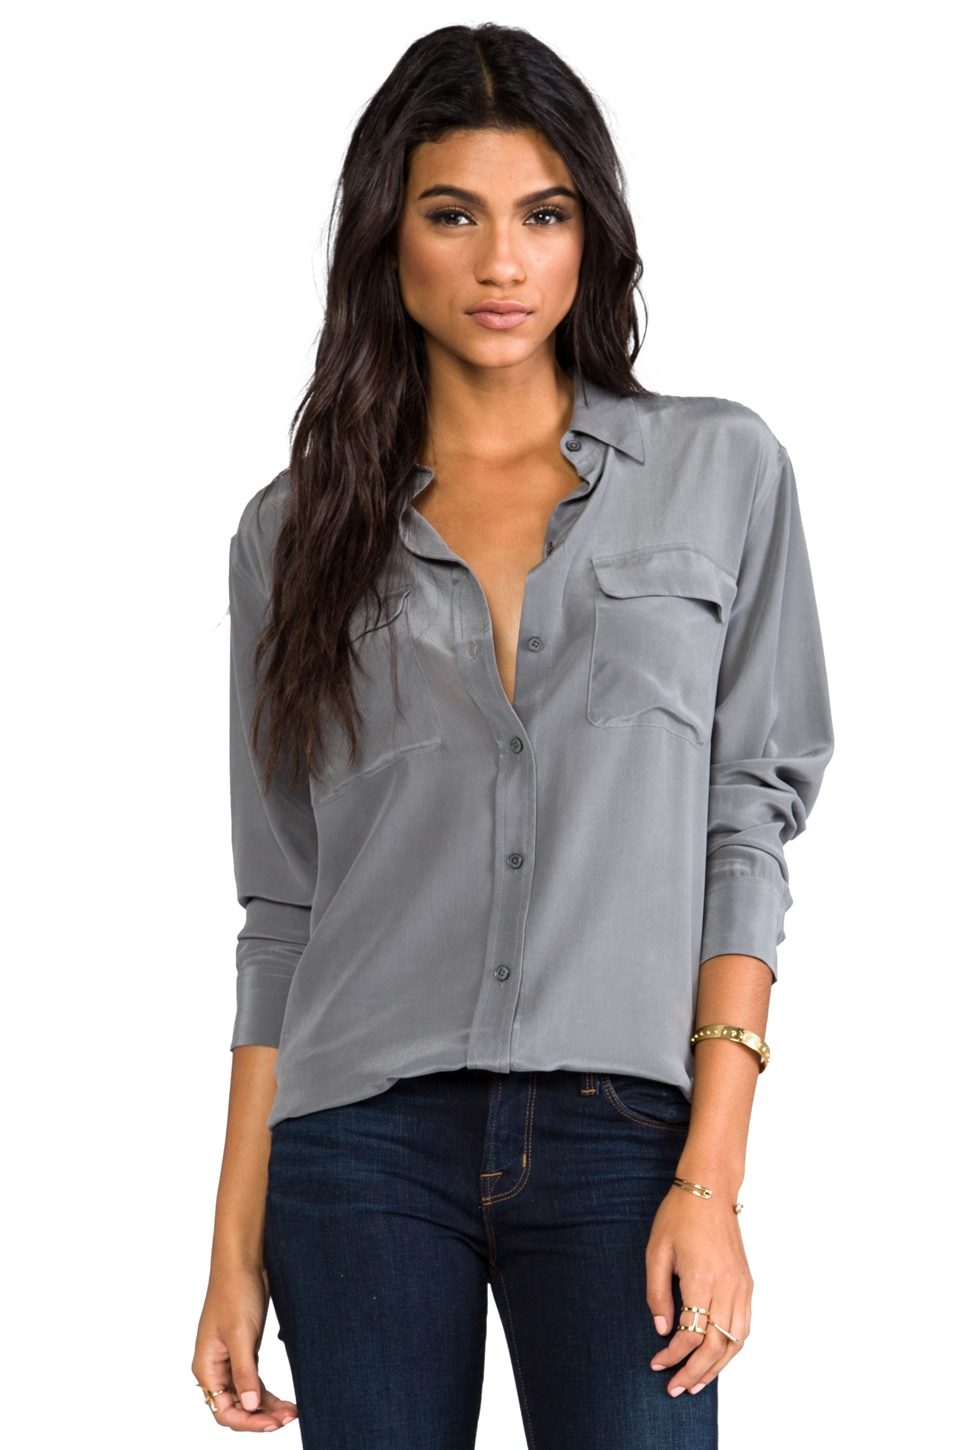 Equipment Signature Vintage Wash Blouse in Gun Metal